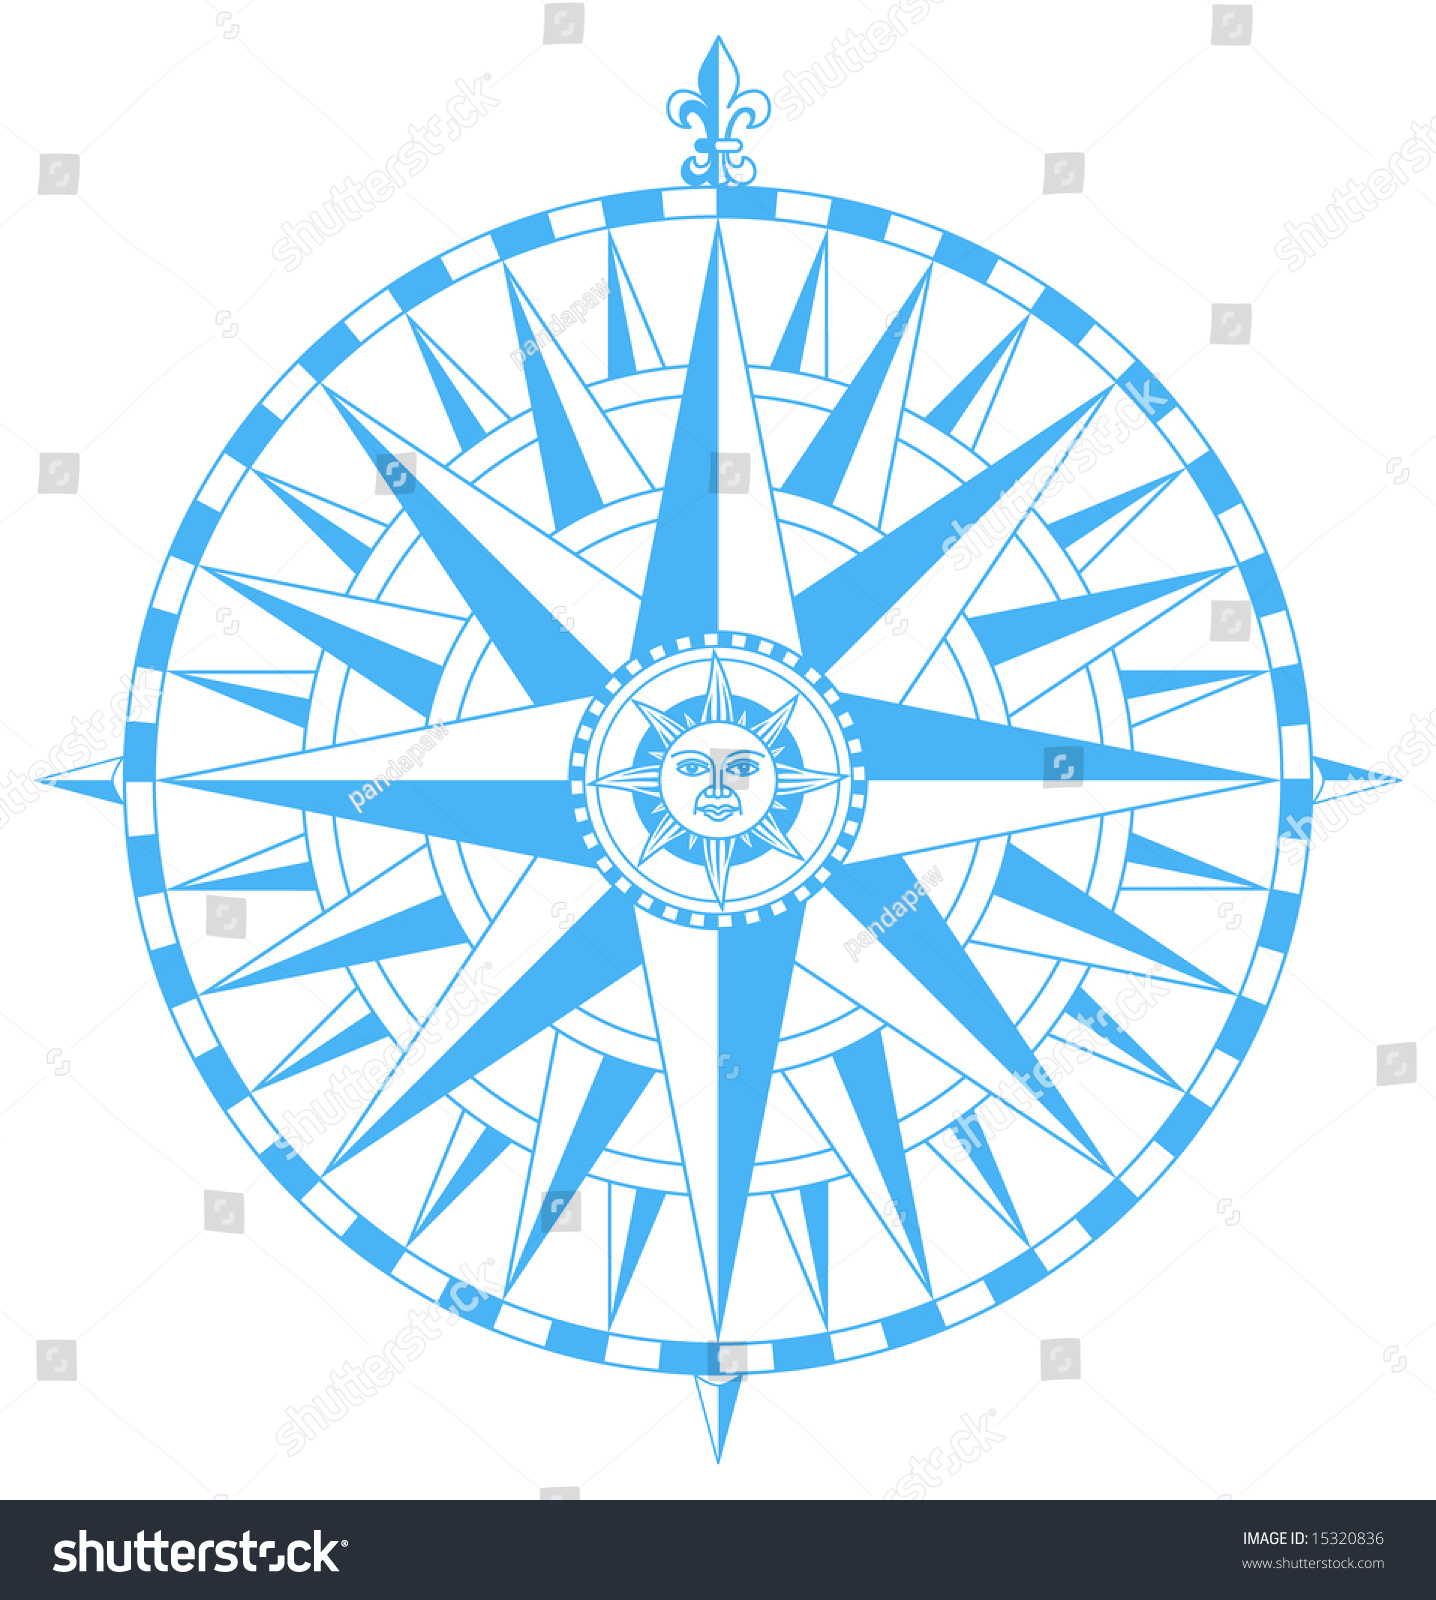 Compass wind rose fleurdelys pointing north stock vector 15320836 compass wind rose with fleur de lys pointing north and sun face in center buycottarizona